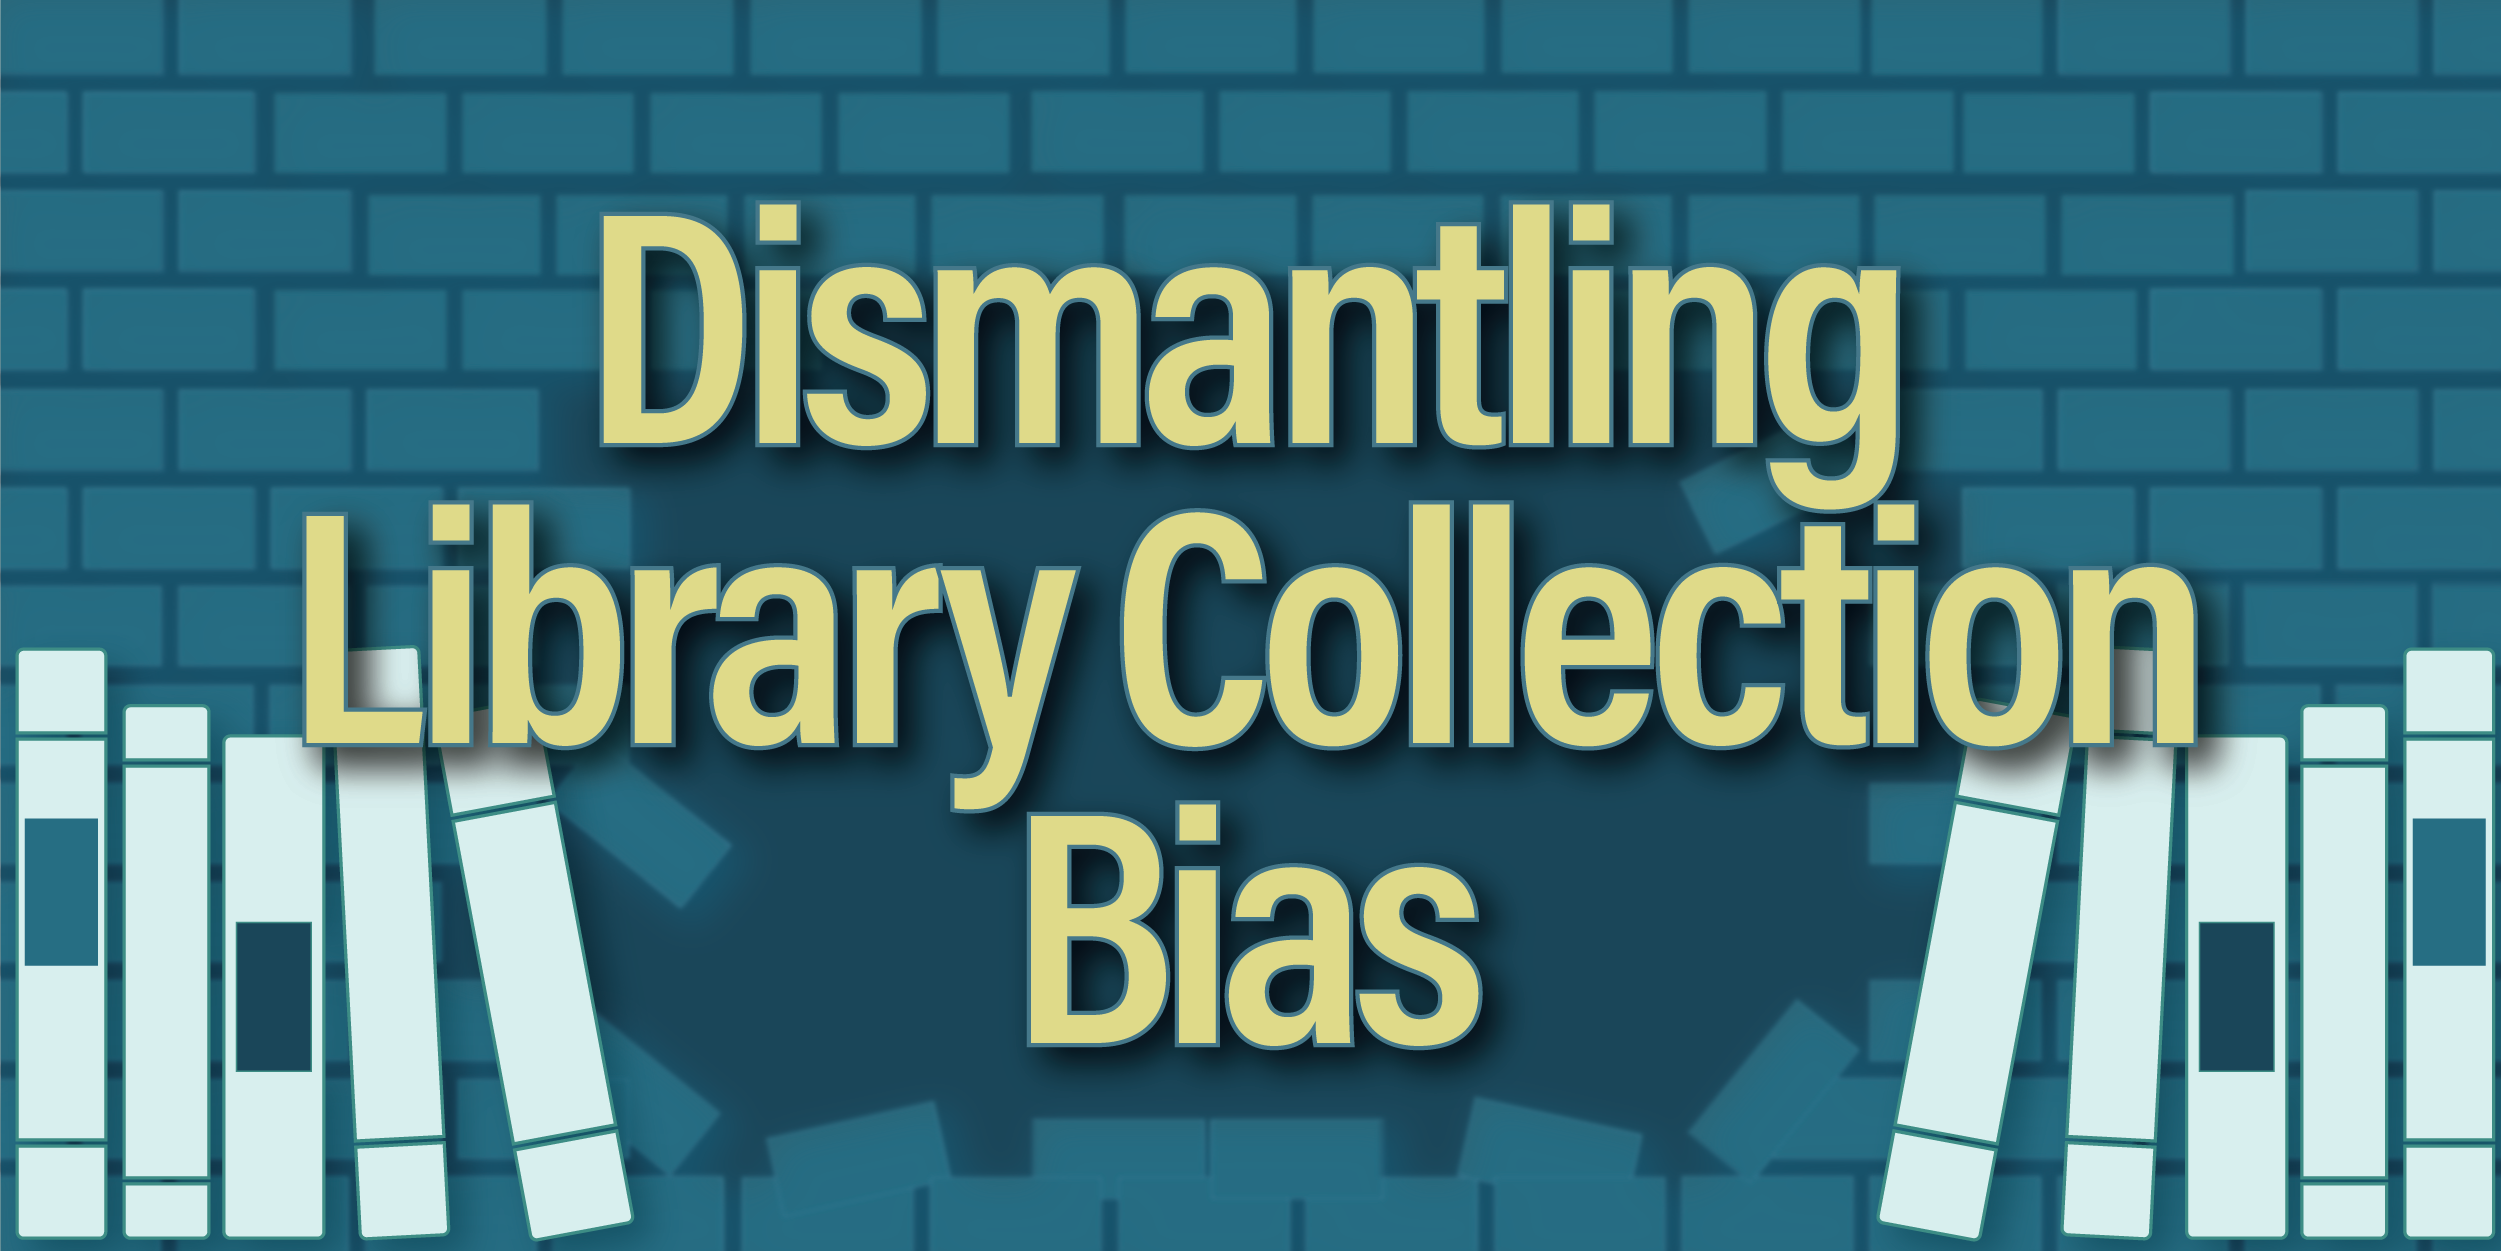 Dismantling Library Collection Bias